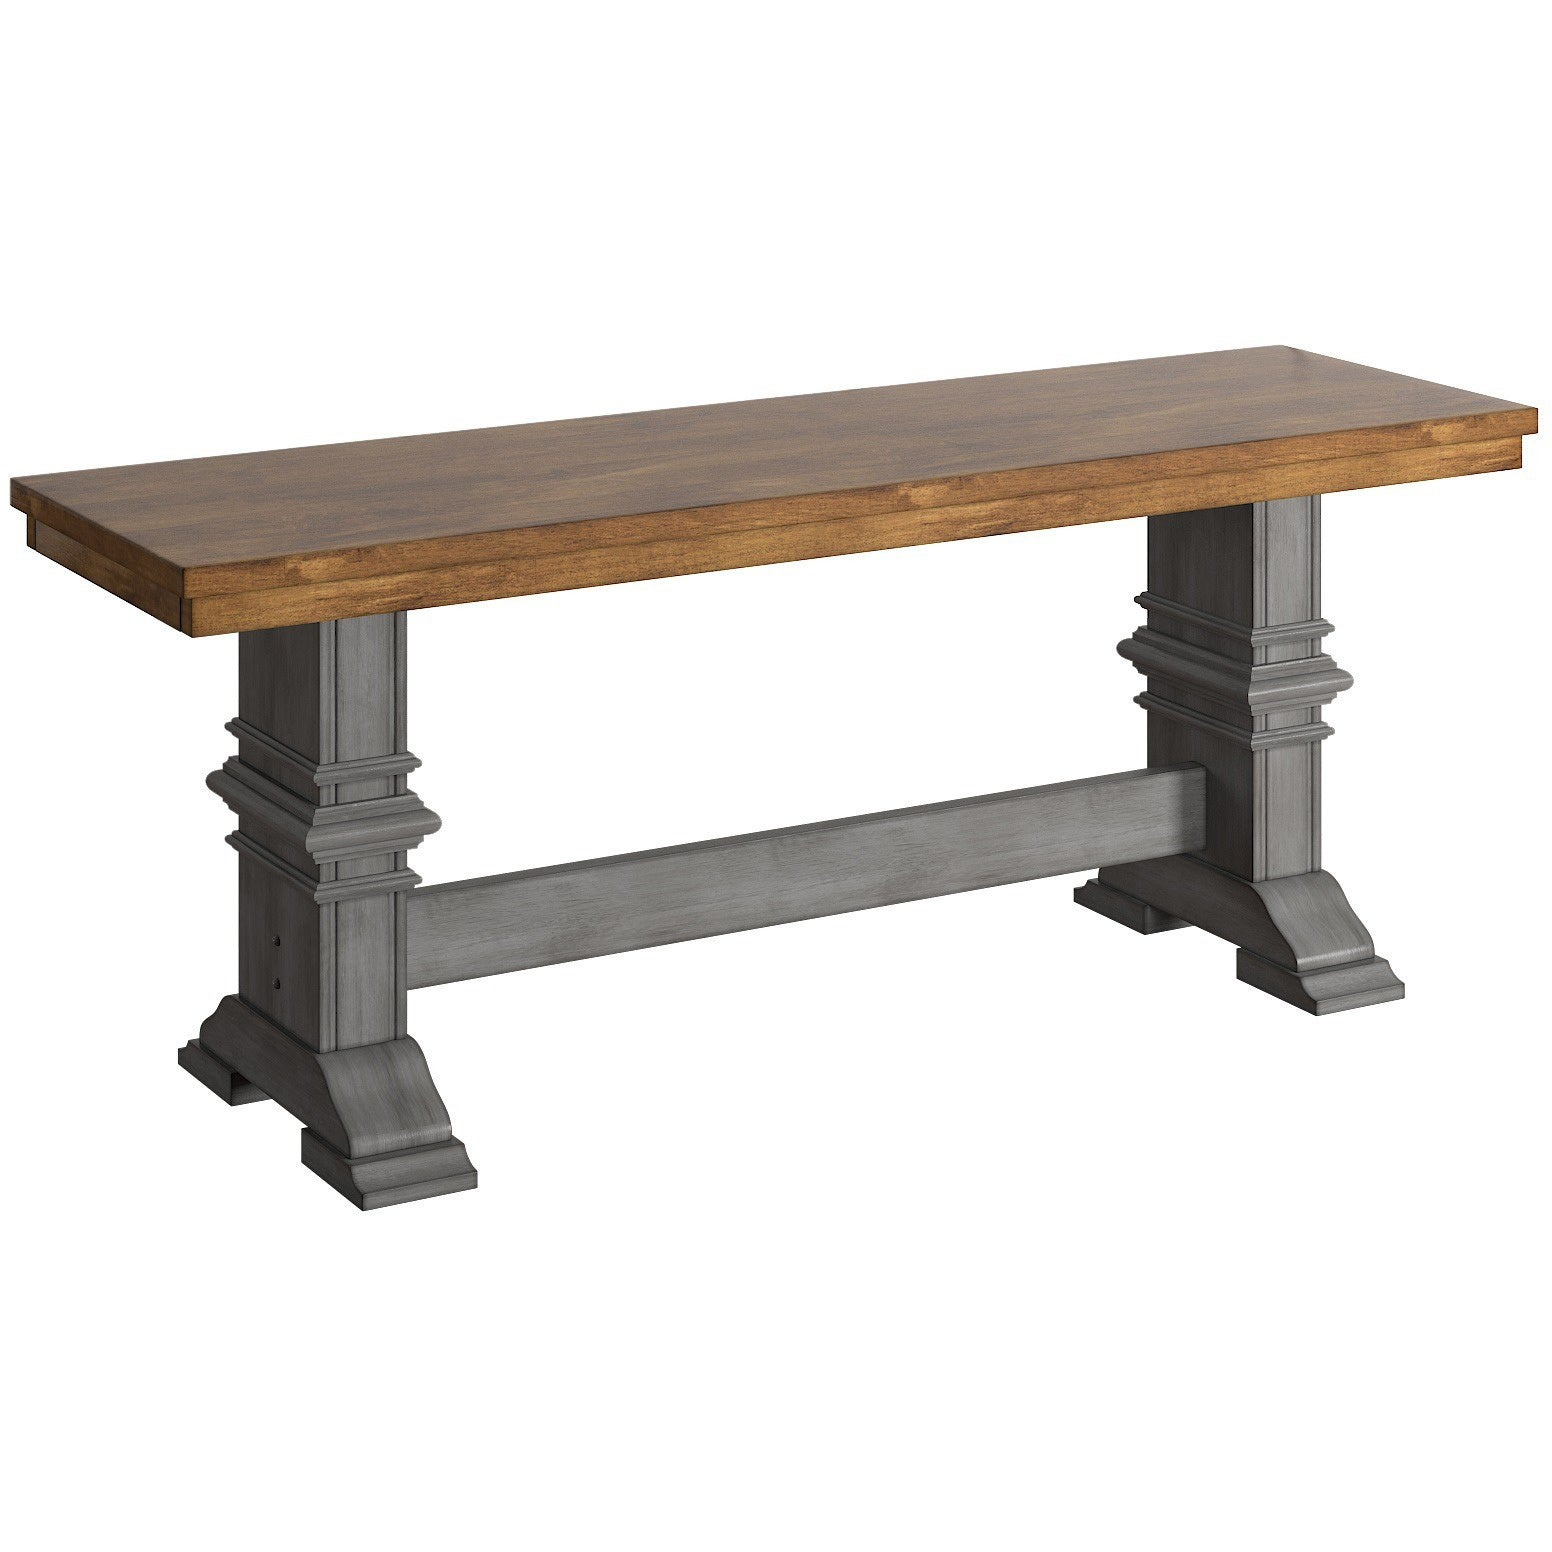 Eleanor-Two-Tone-Trestle-Leg-Wood-Dining-Bench-